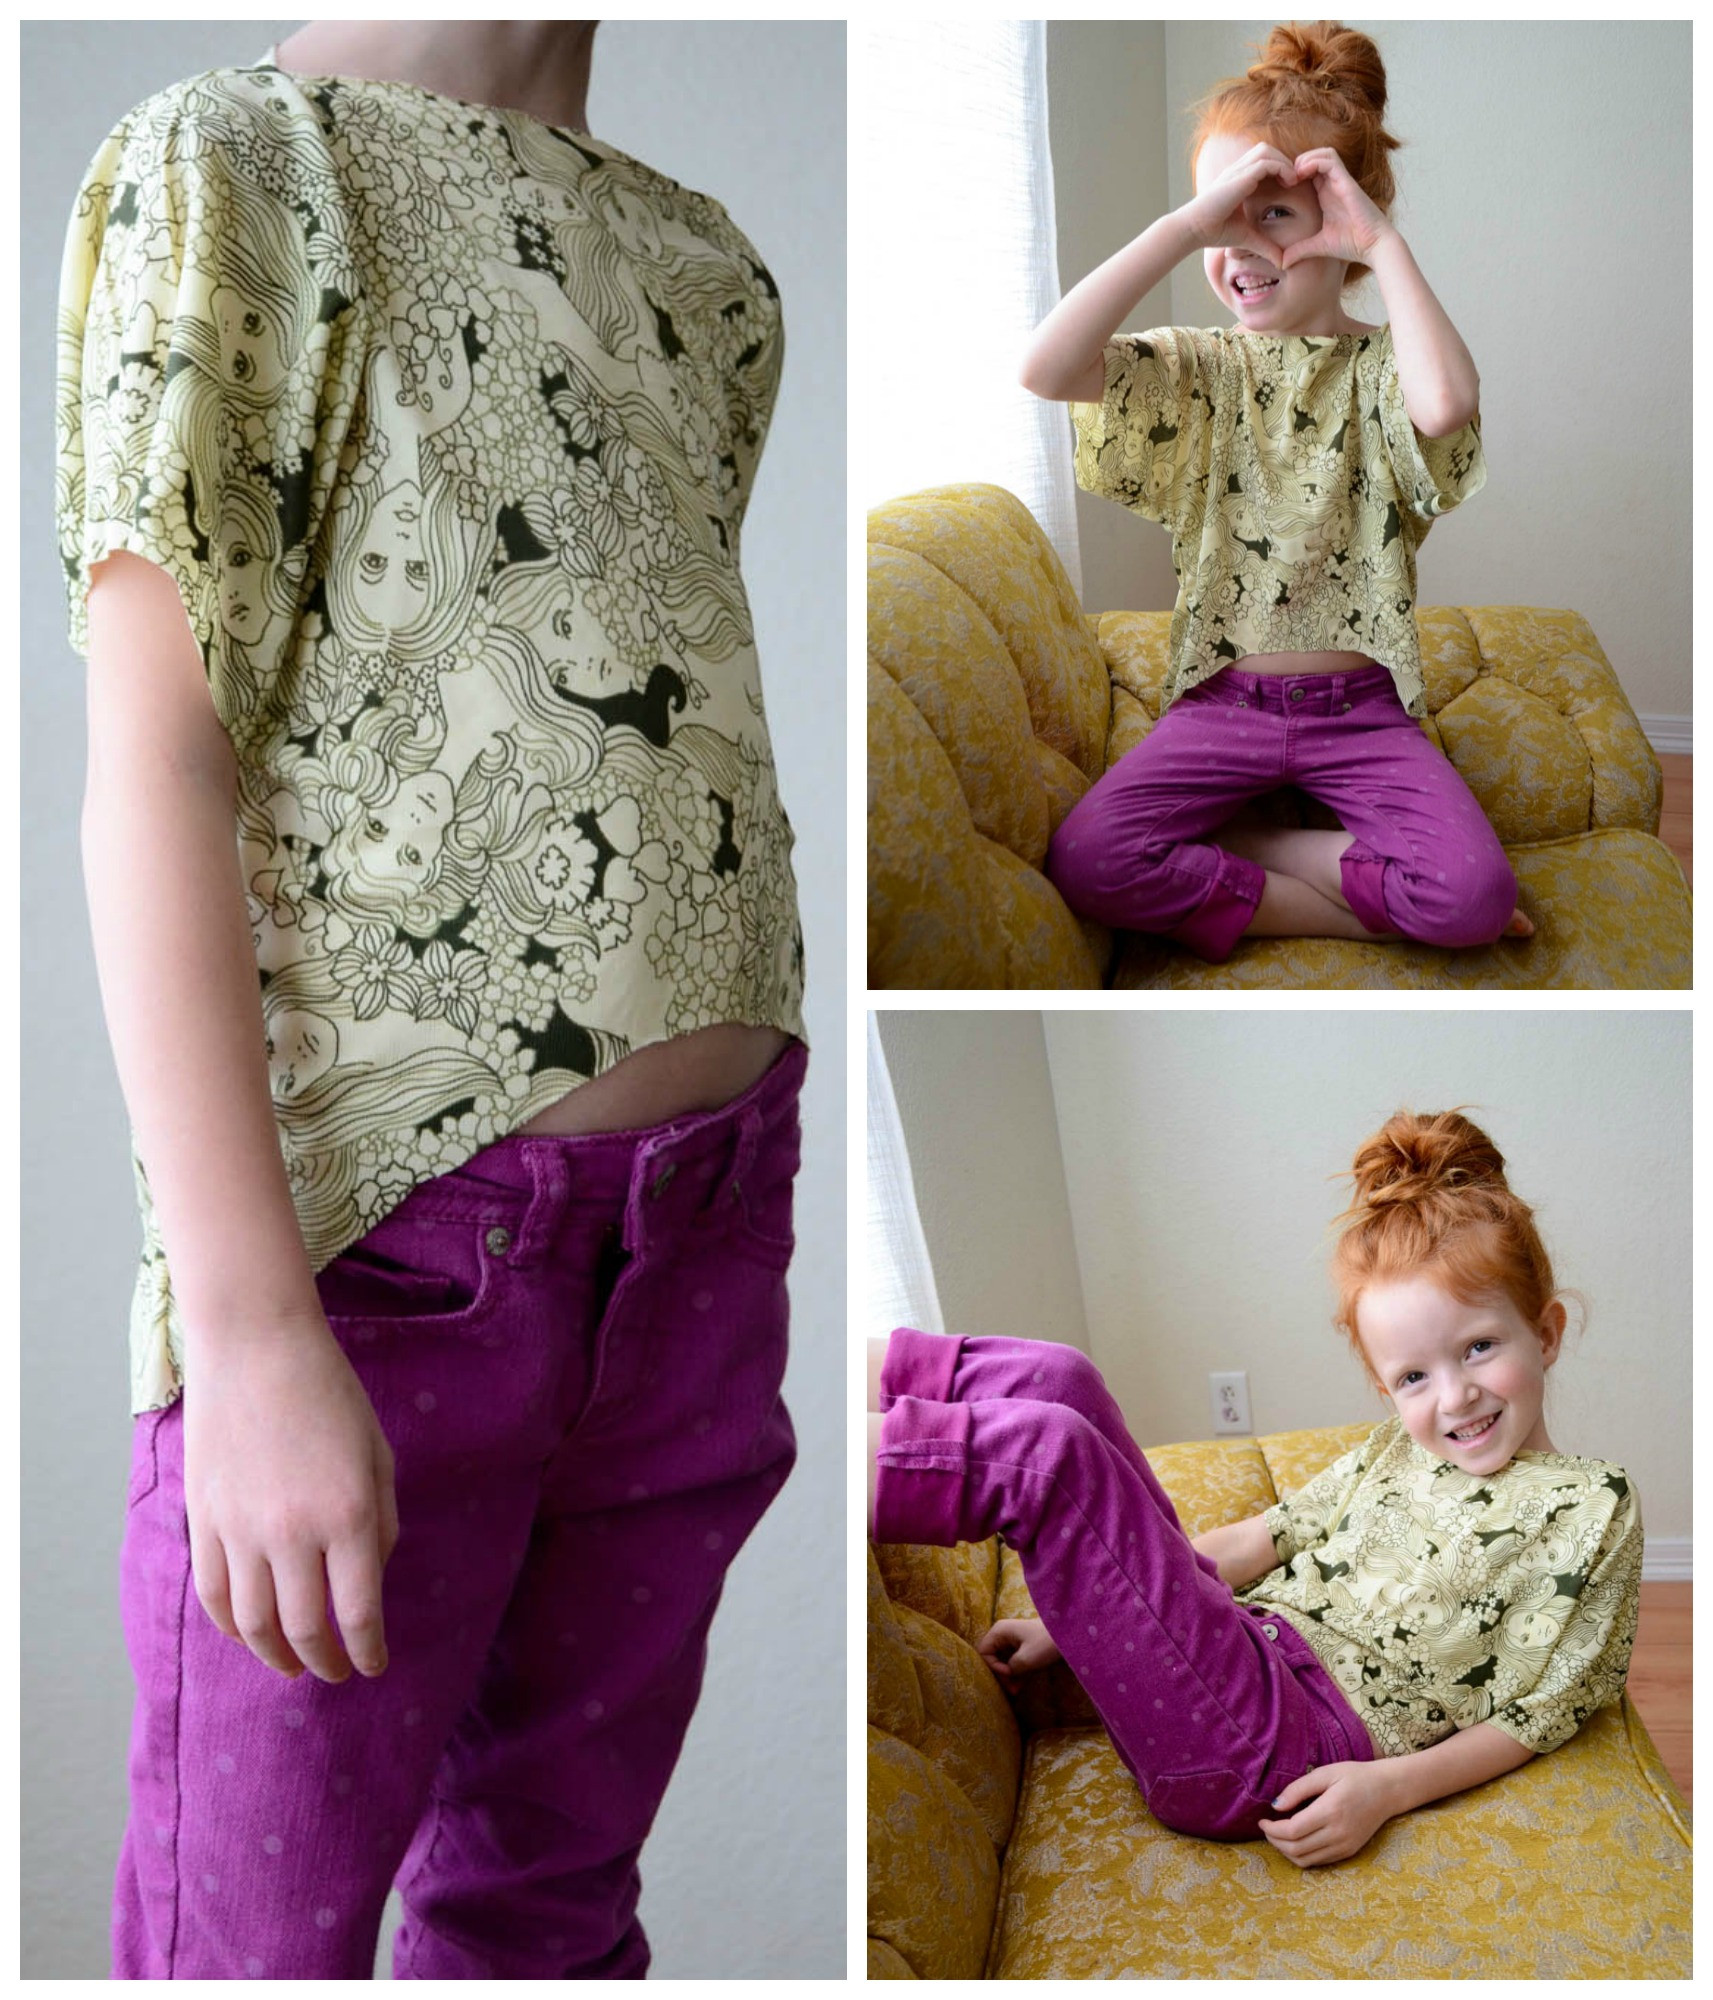 Best ideas about DIY Kids Clothing . Save or Pin MayDae Now.